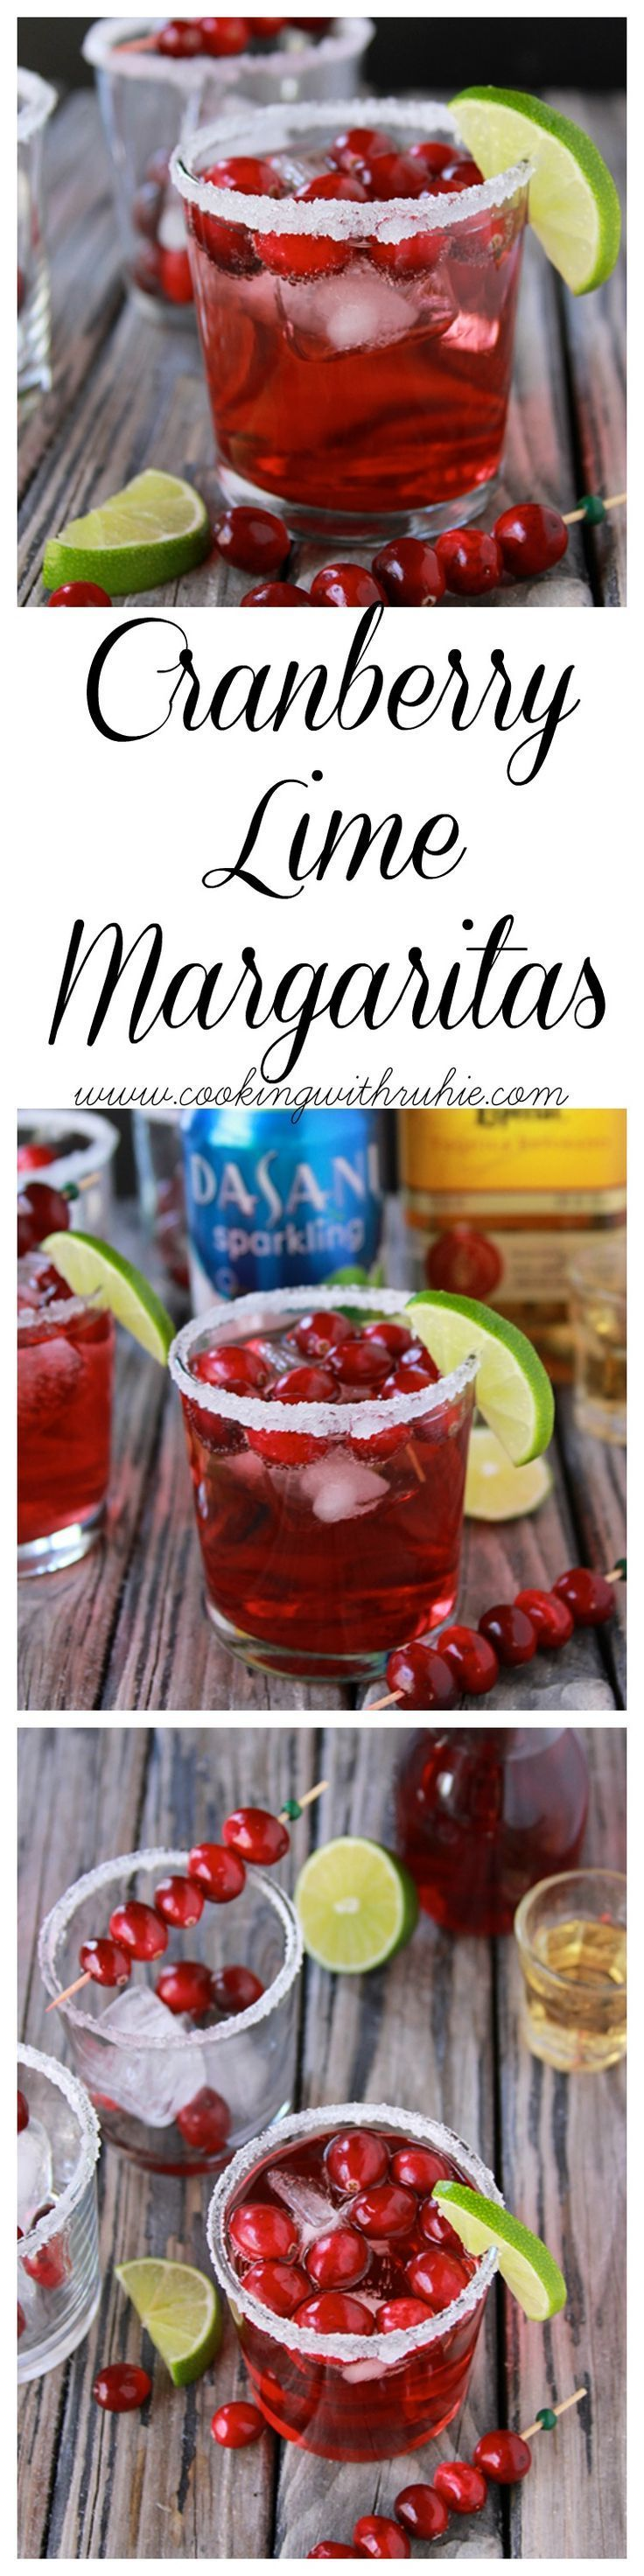 Cranberry Lime Margaritas on http://www.cookingwithruthie.com is a beautiful addition to your holiday parties! #SparklingHolidays /walmart/